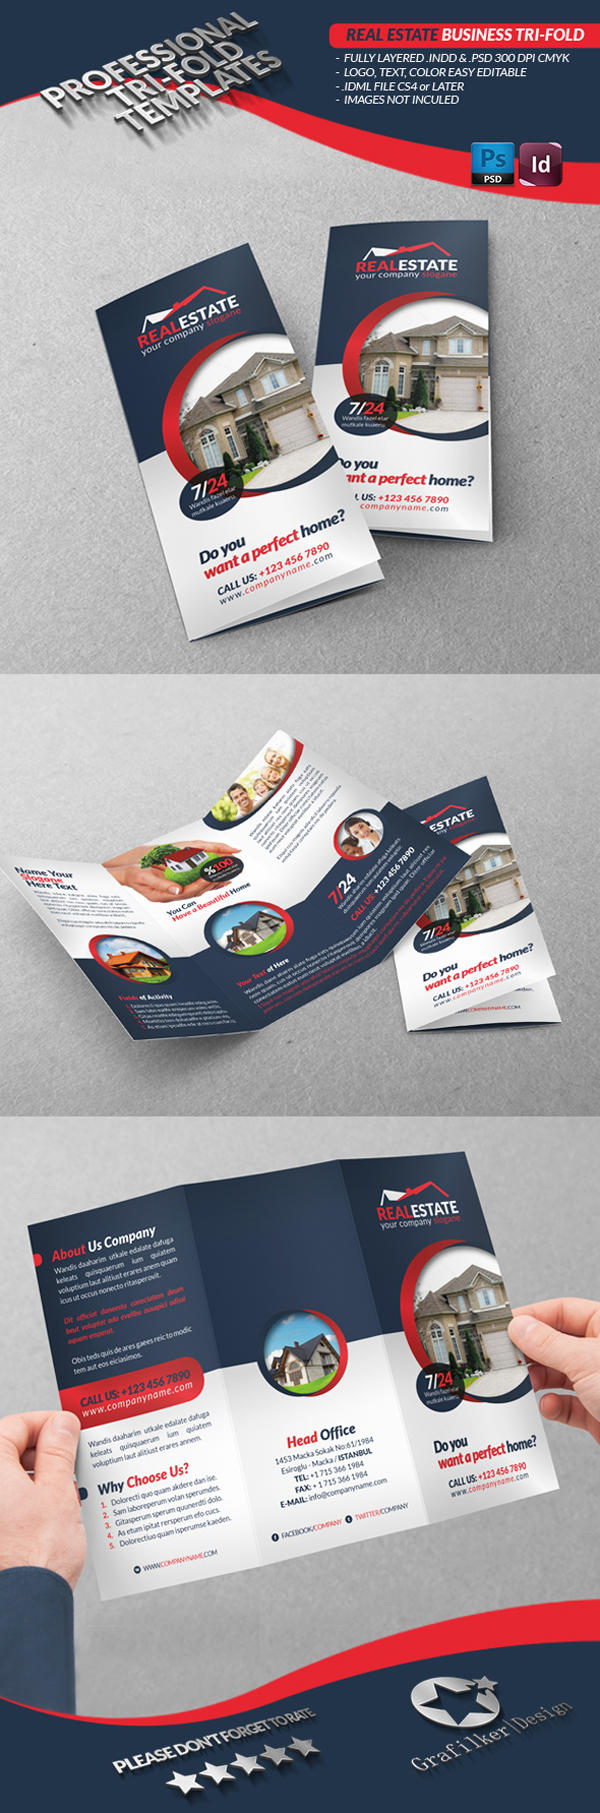 Professional Tri-Fold Templates by grafilker - 37468